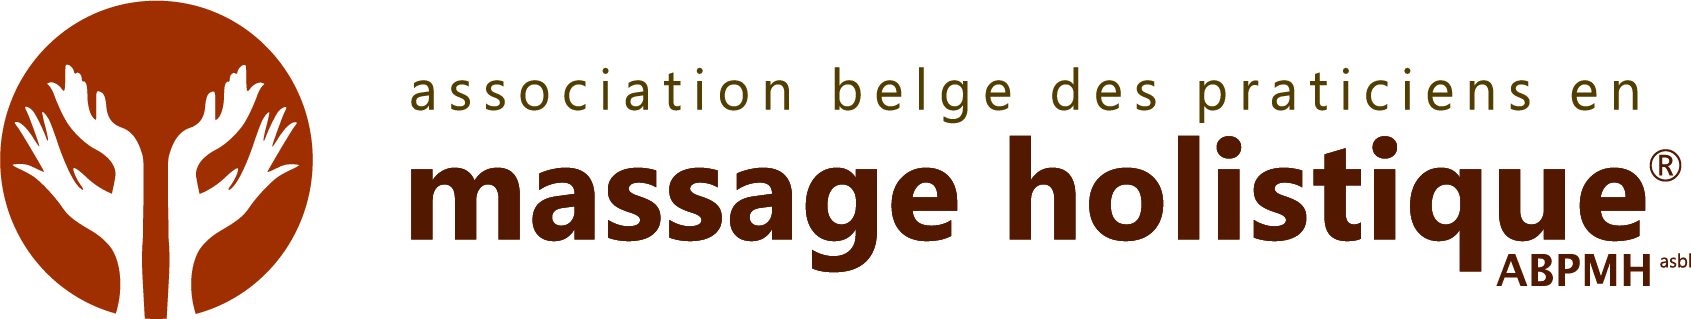 Massage Holistique ® - ABPMH